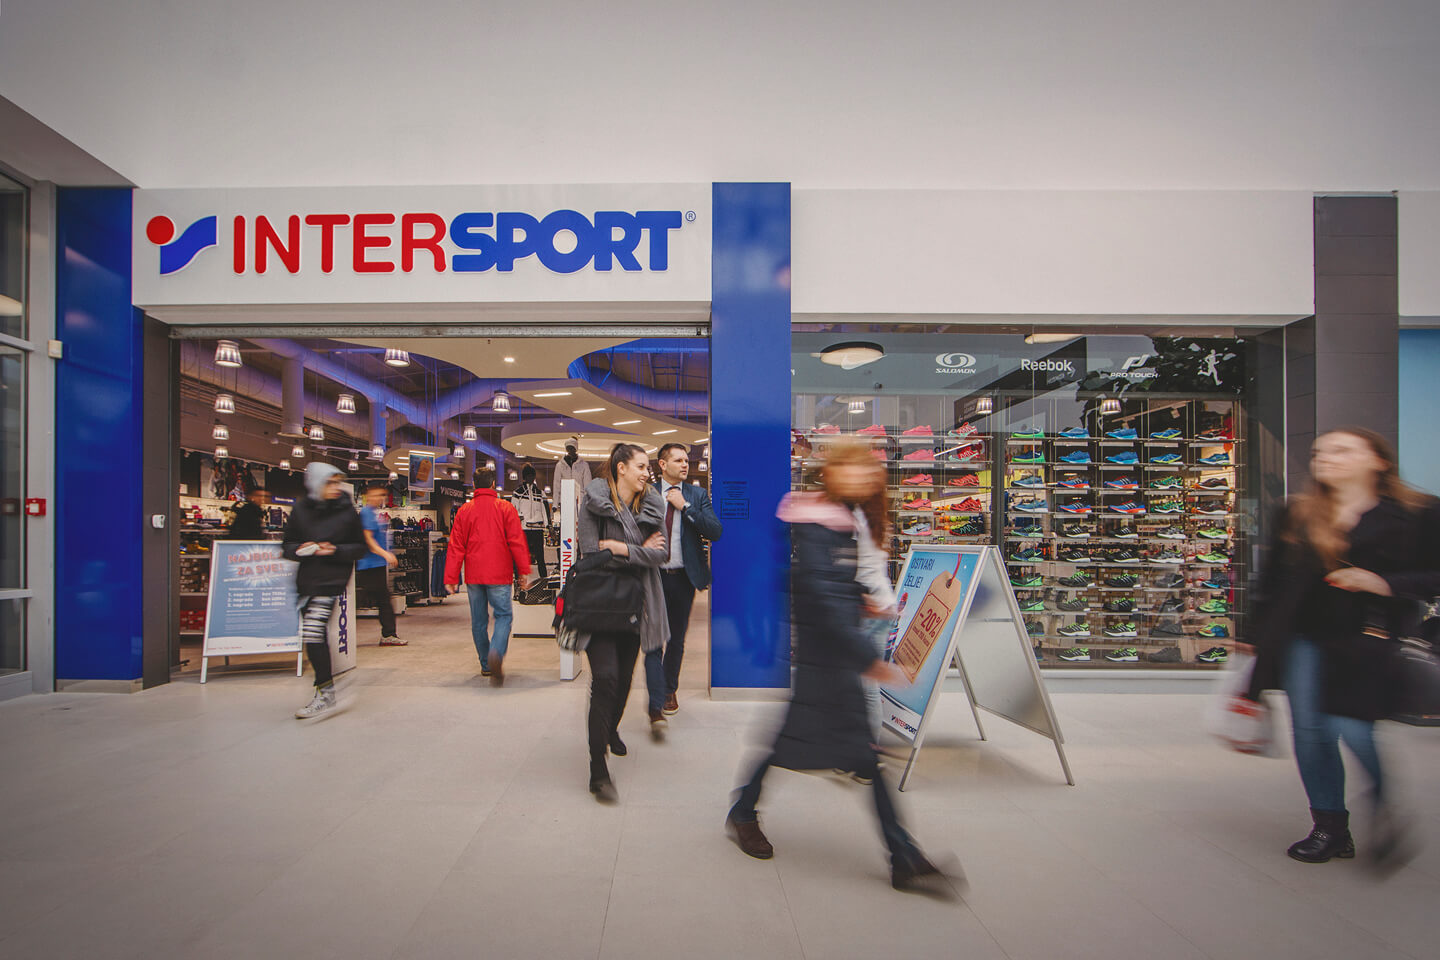 Intersport Zagreb 1 Intersport